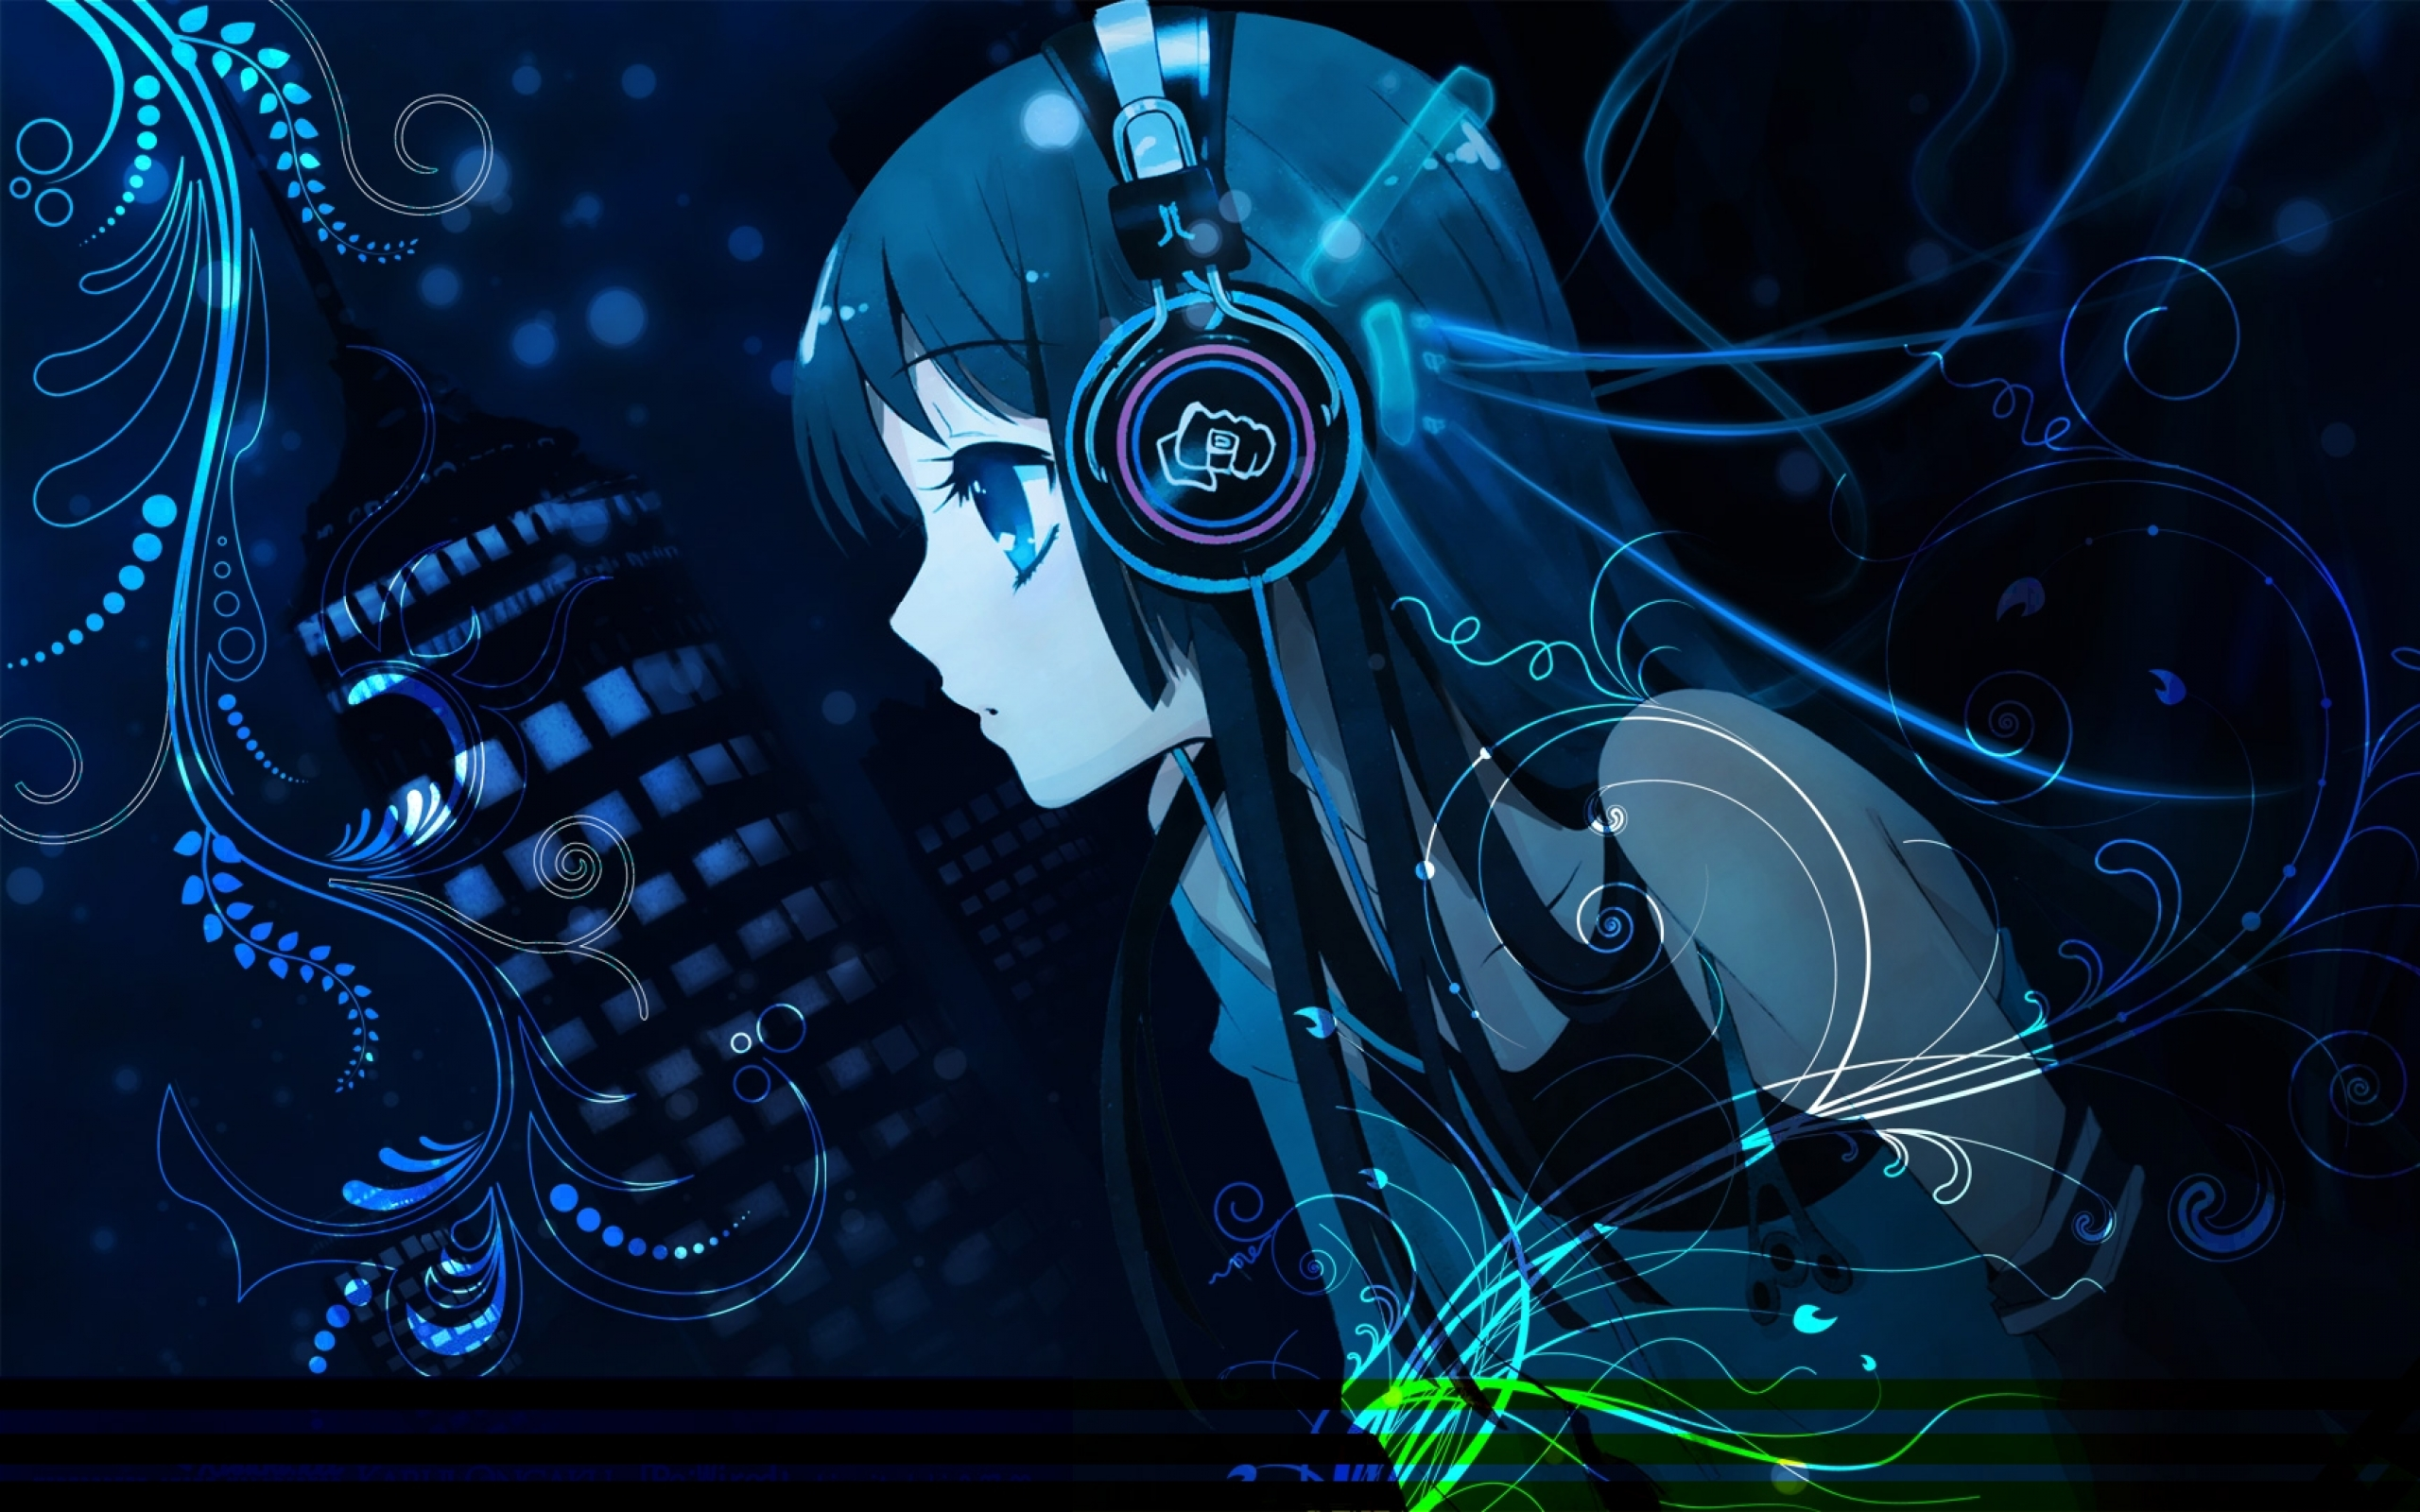 Erosu Images Headphones Abstract Music Kon Akiyama Mio Anime Girls Wallpaper Hd X Www Paperhi Com Hd Wallpaper And Background Photos